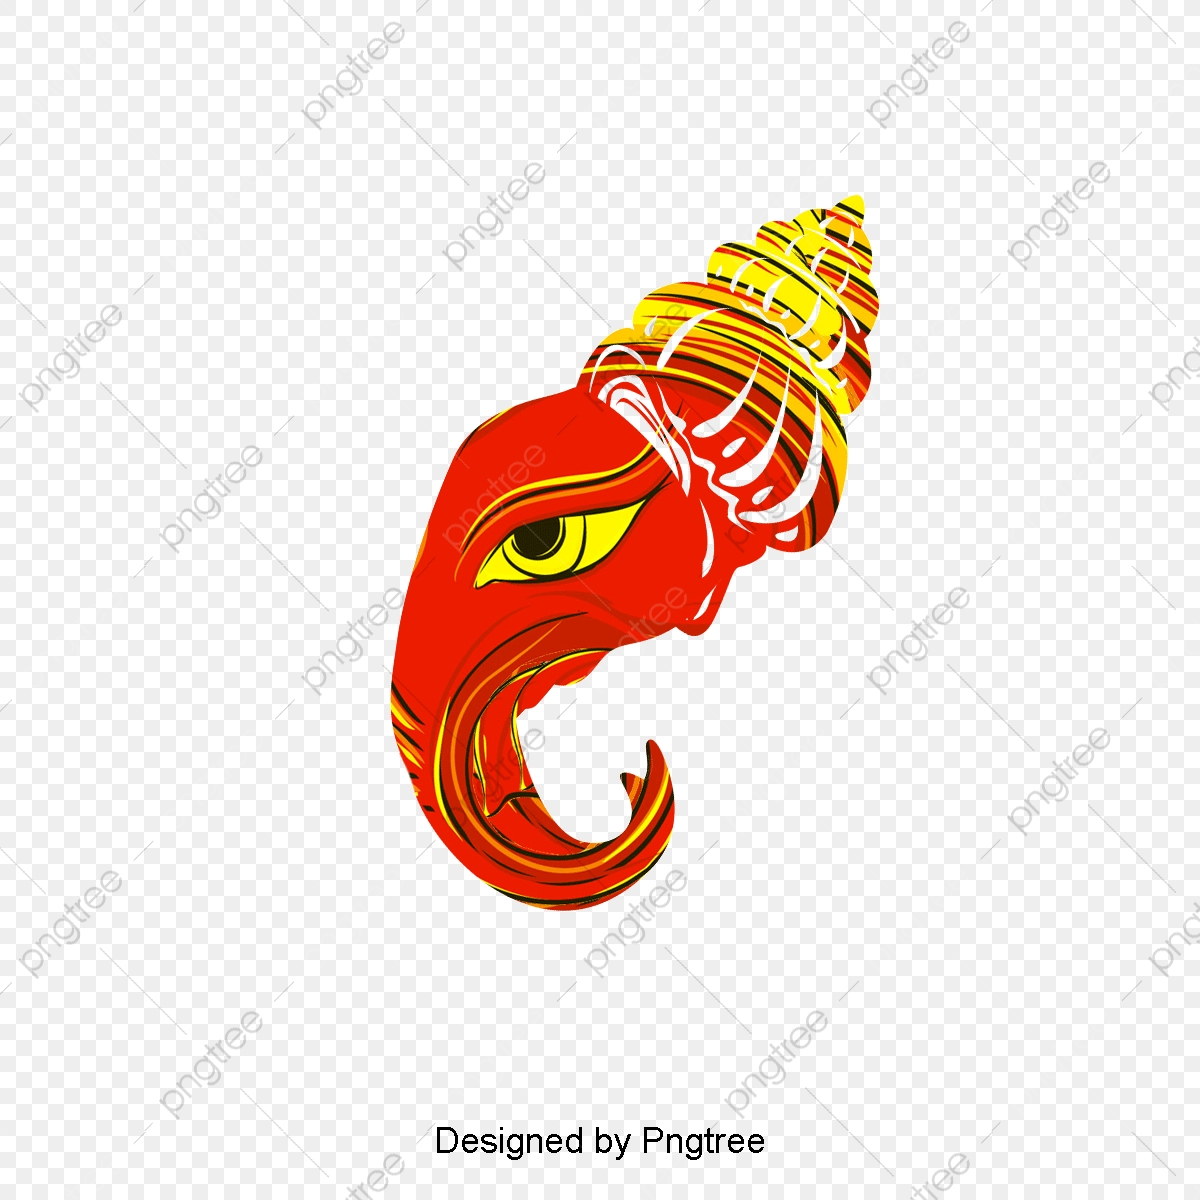 Abstract Ganesha Elephant Head Eye Hat Png Transparent Clipart Image And Psd File For Free Download ✓ free for commercial use ✓ high quality images. https pngtree com freepng abstract ganesha 566026 html